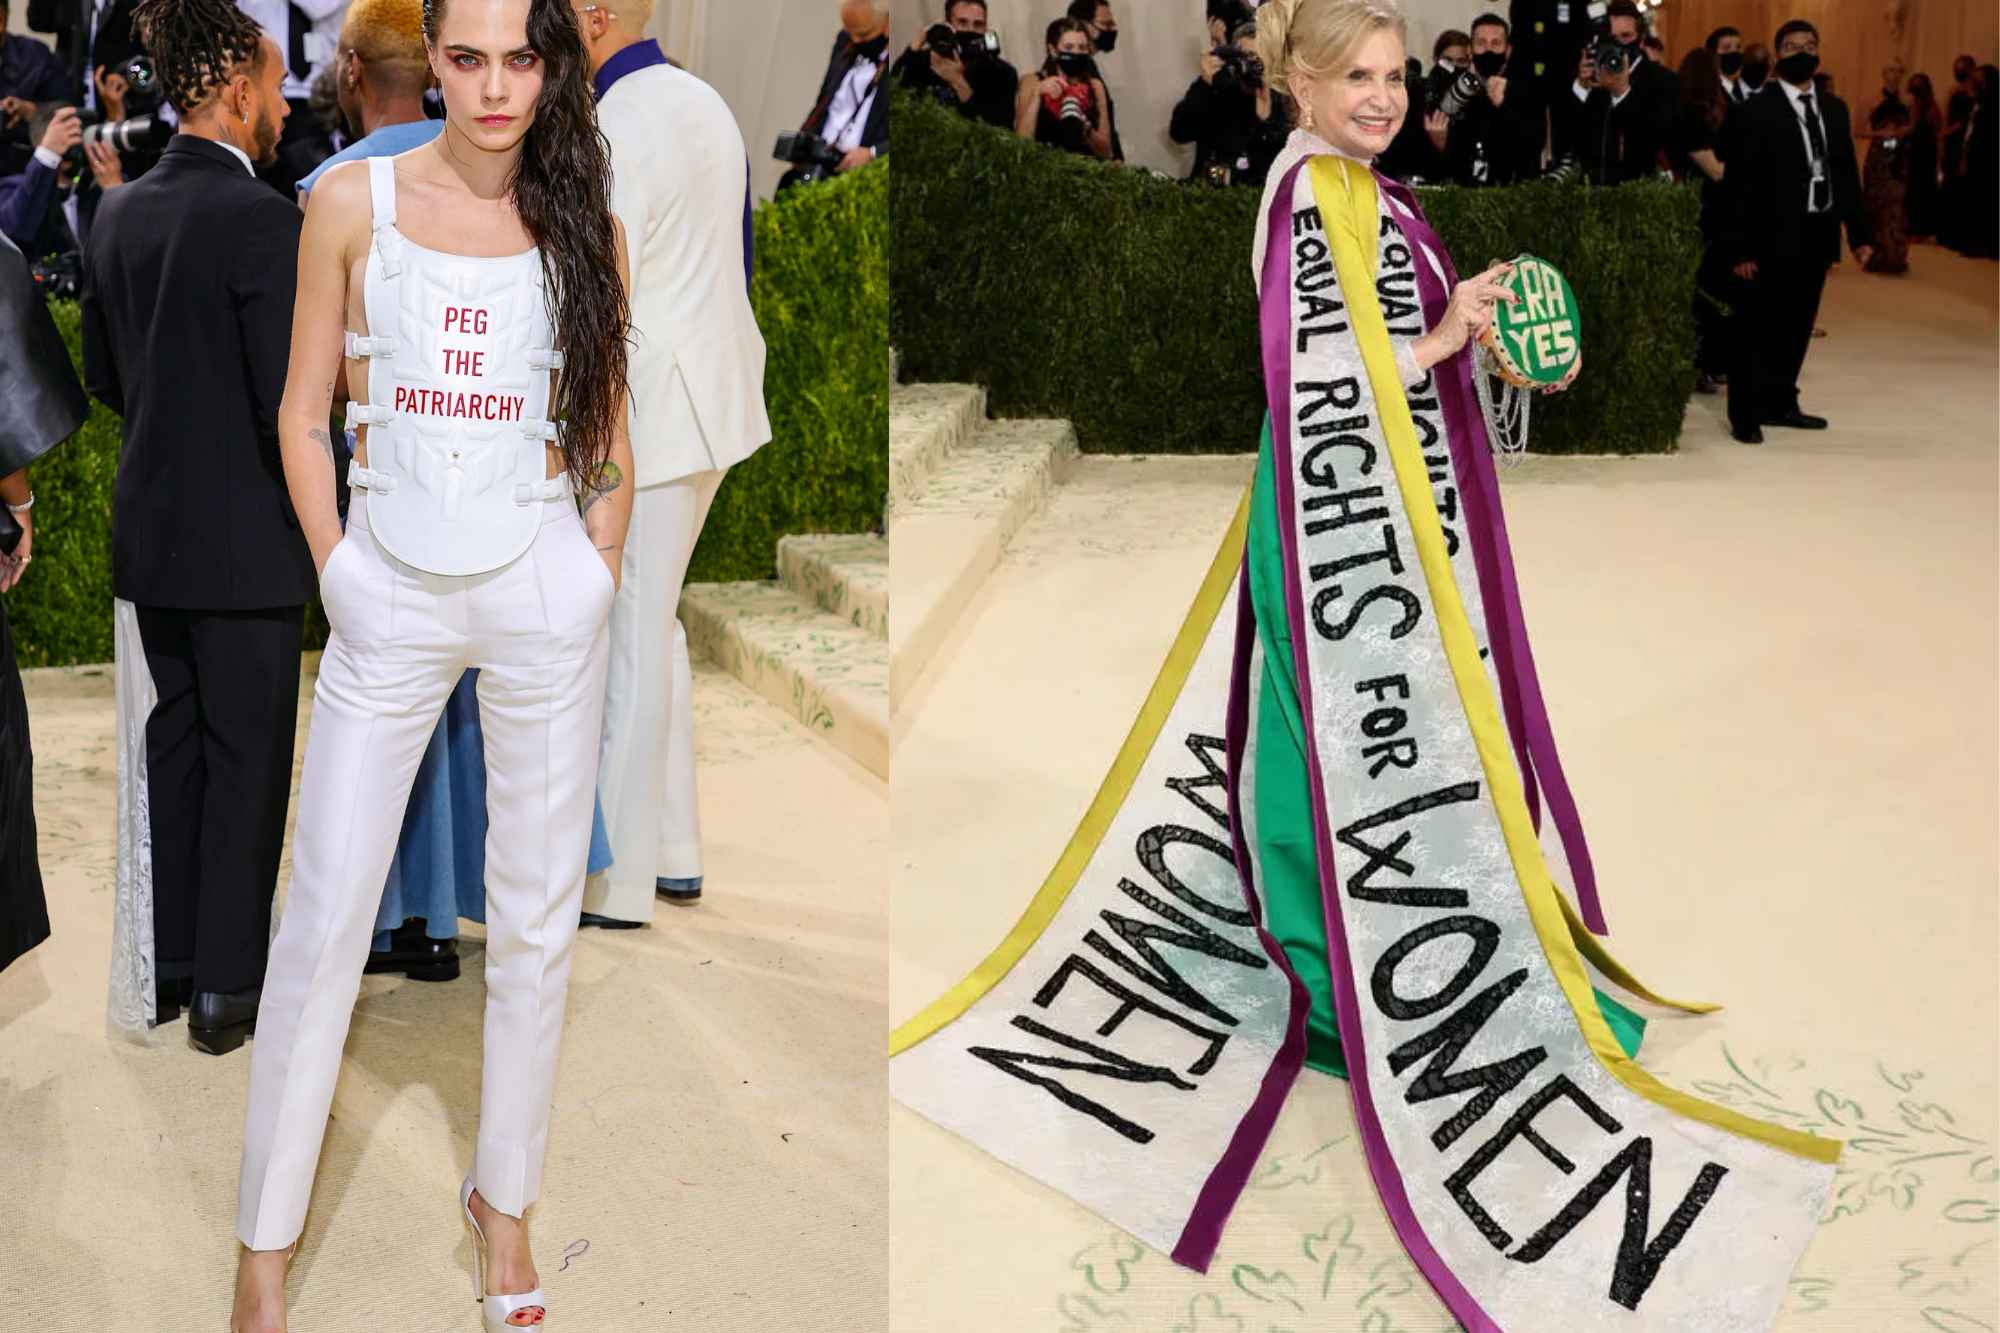 Carolyn B. Maloney and Cara Delevingne Worst Dressed at MET Gala 2021 due to problematic outfits